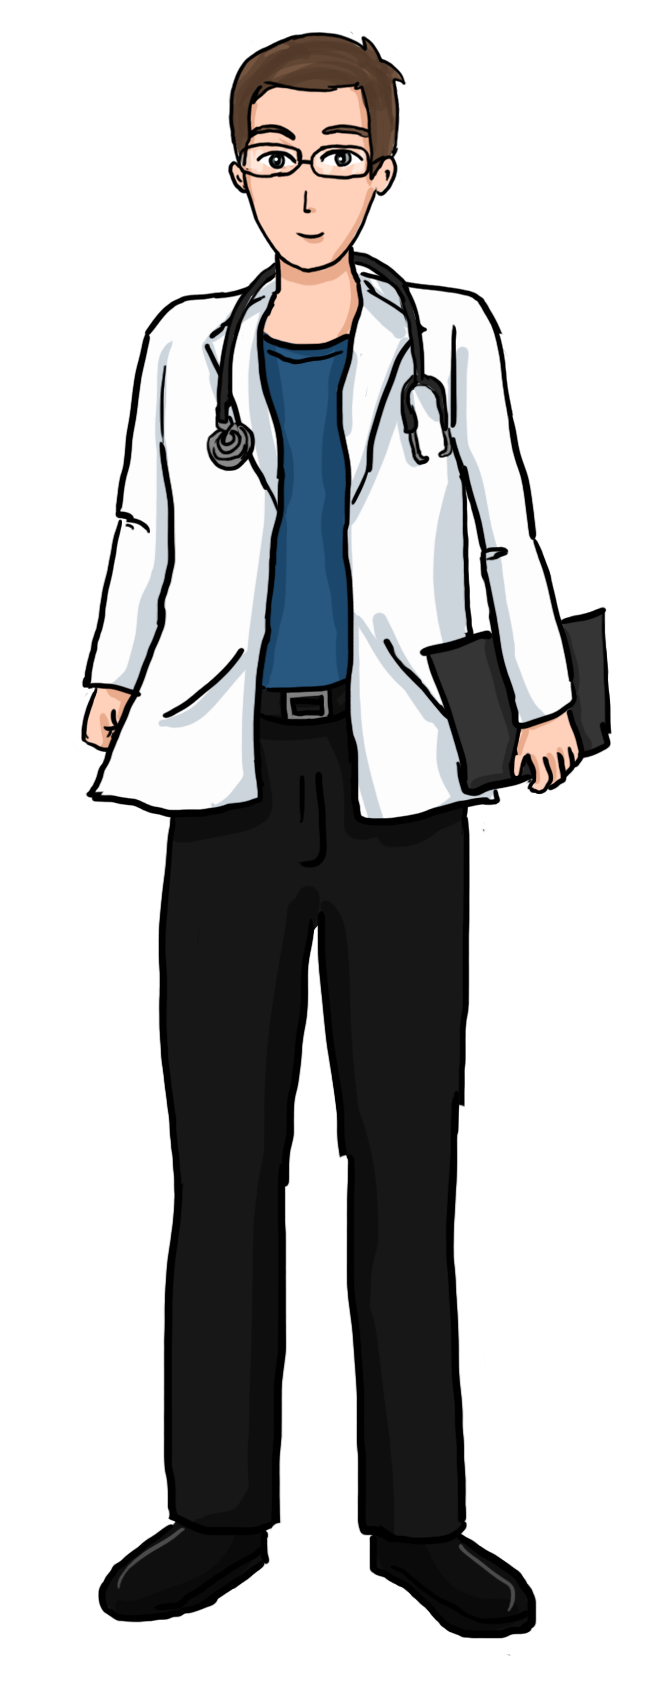 Free clipart school uniforms image library download Doctor Clip Art Pictures   Clipart Panda - Free Clipart Images image library download